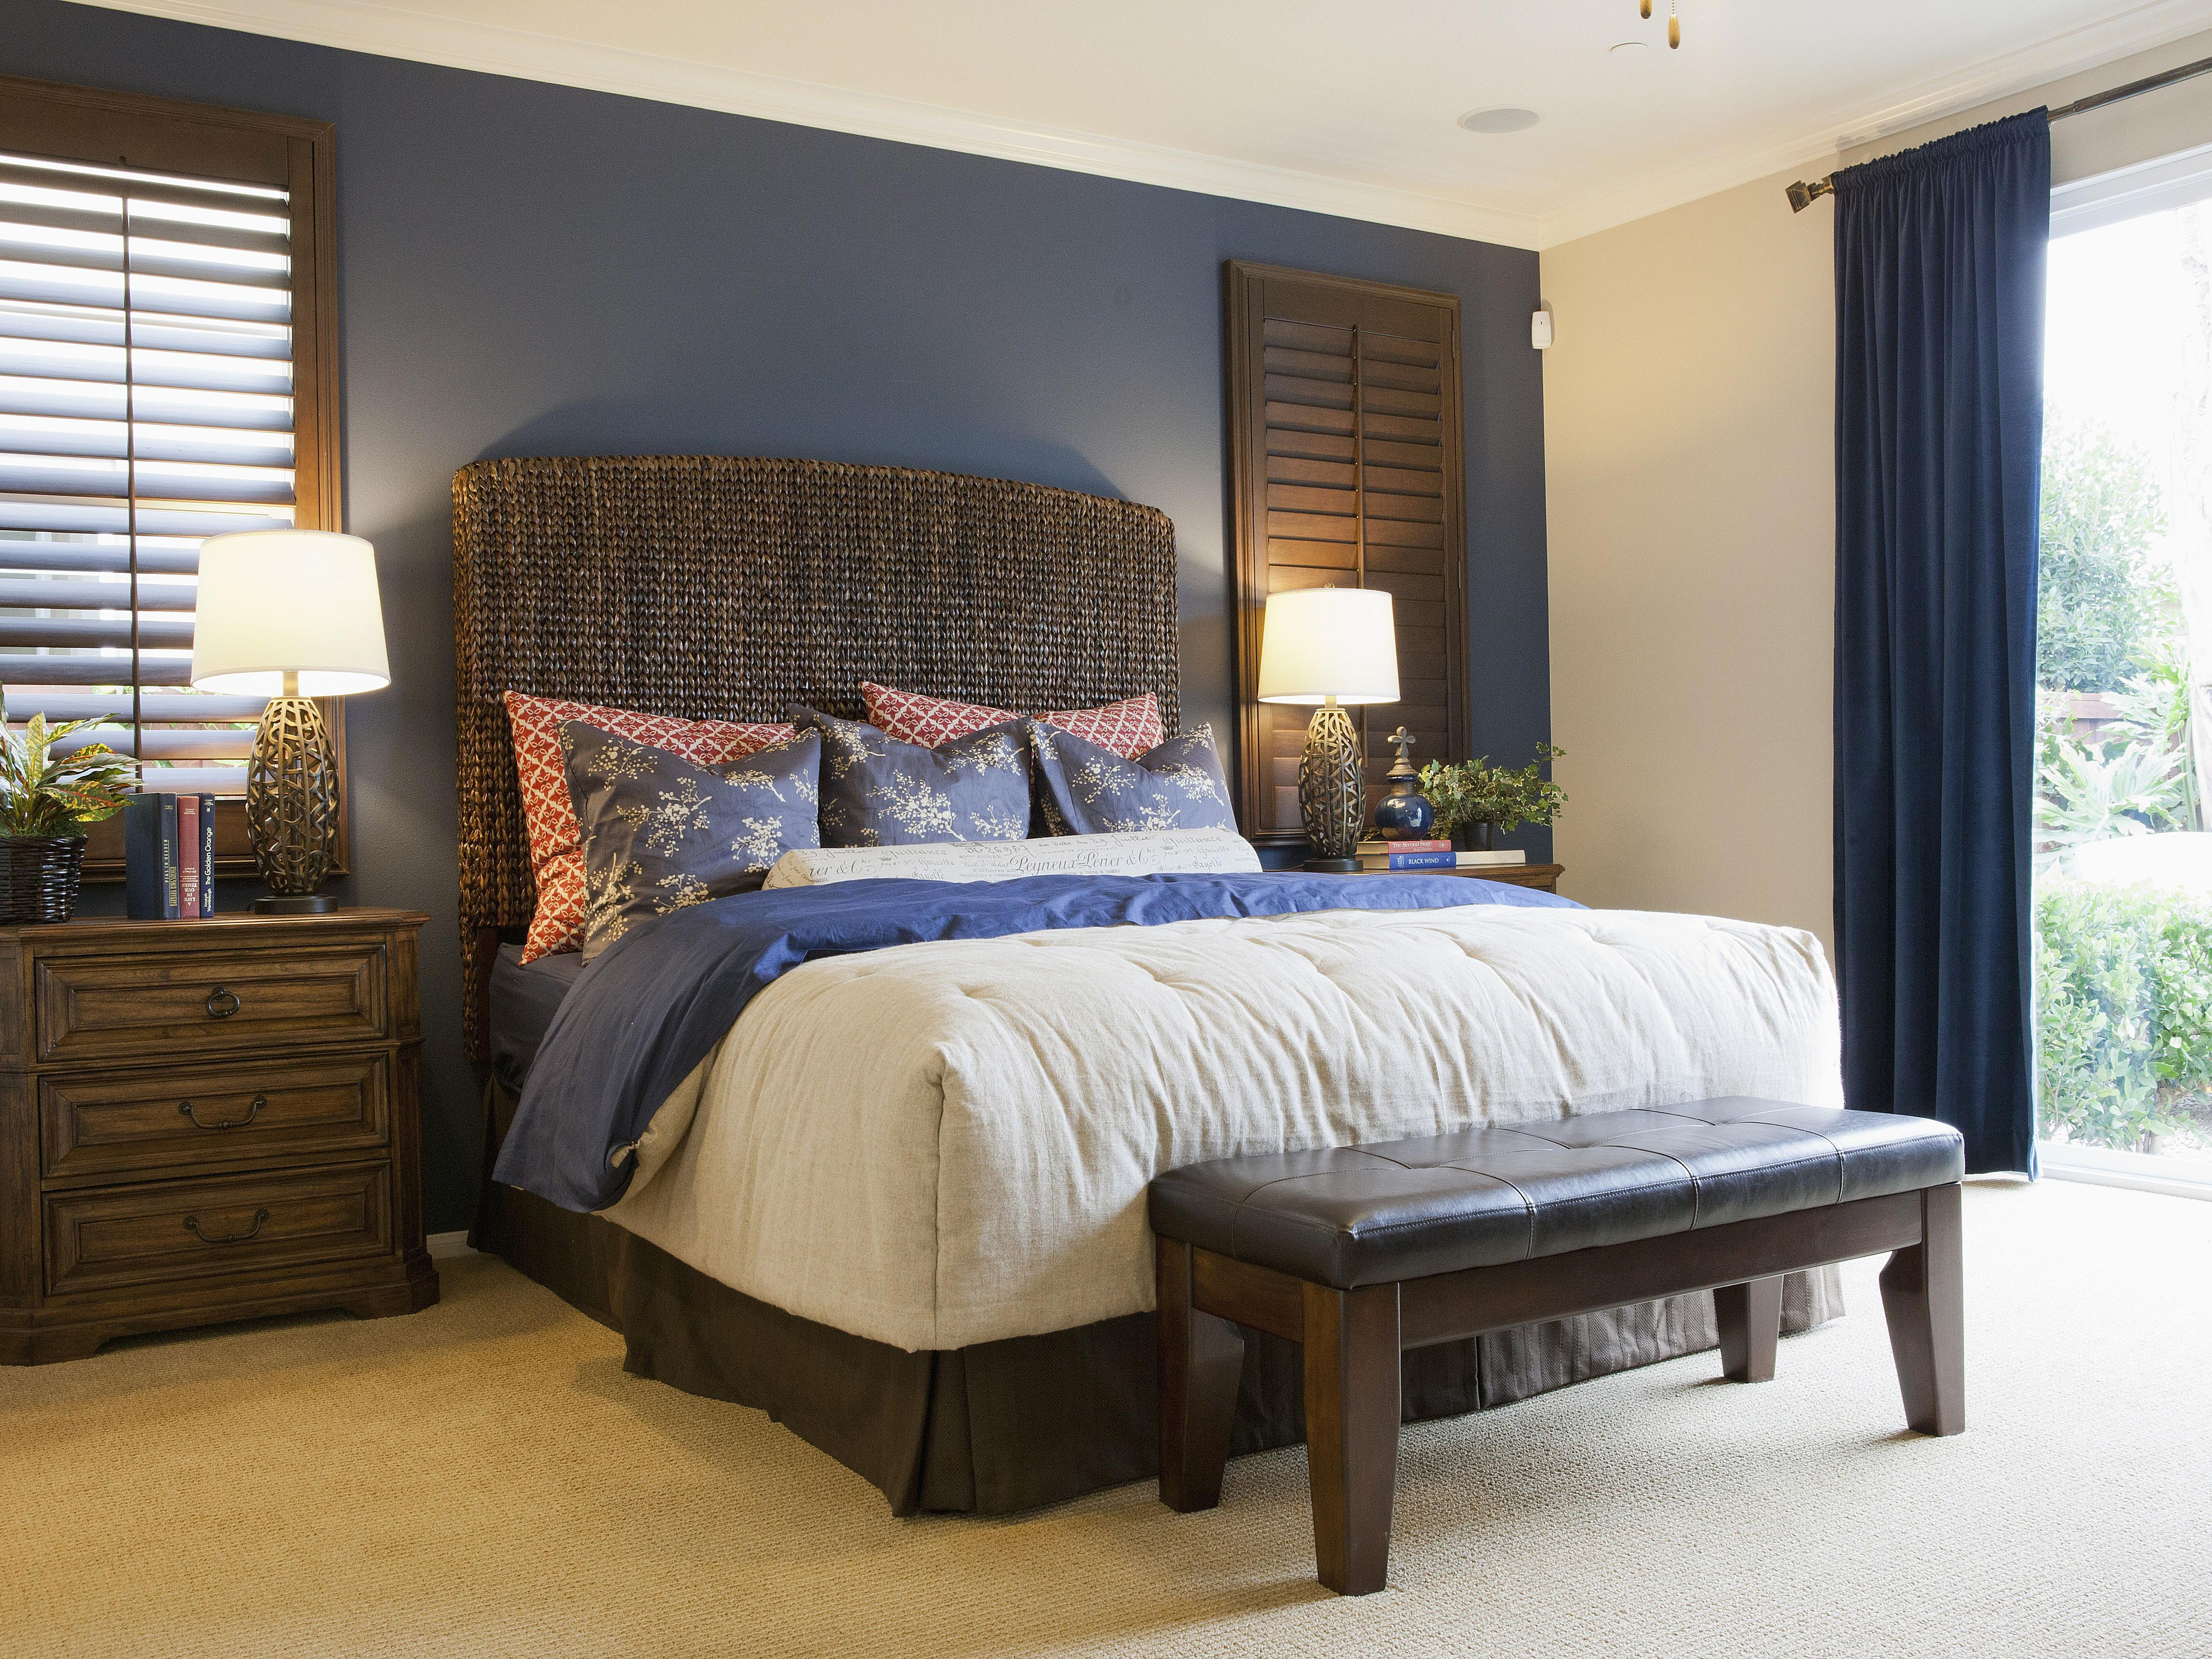 How to Choose an Accent Wall and Color in a Bedroom